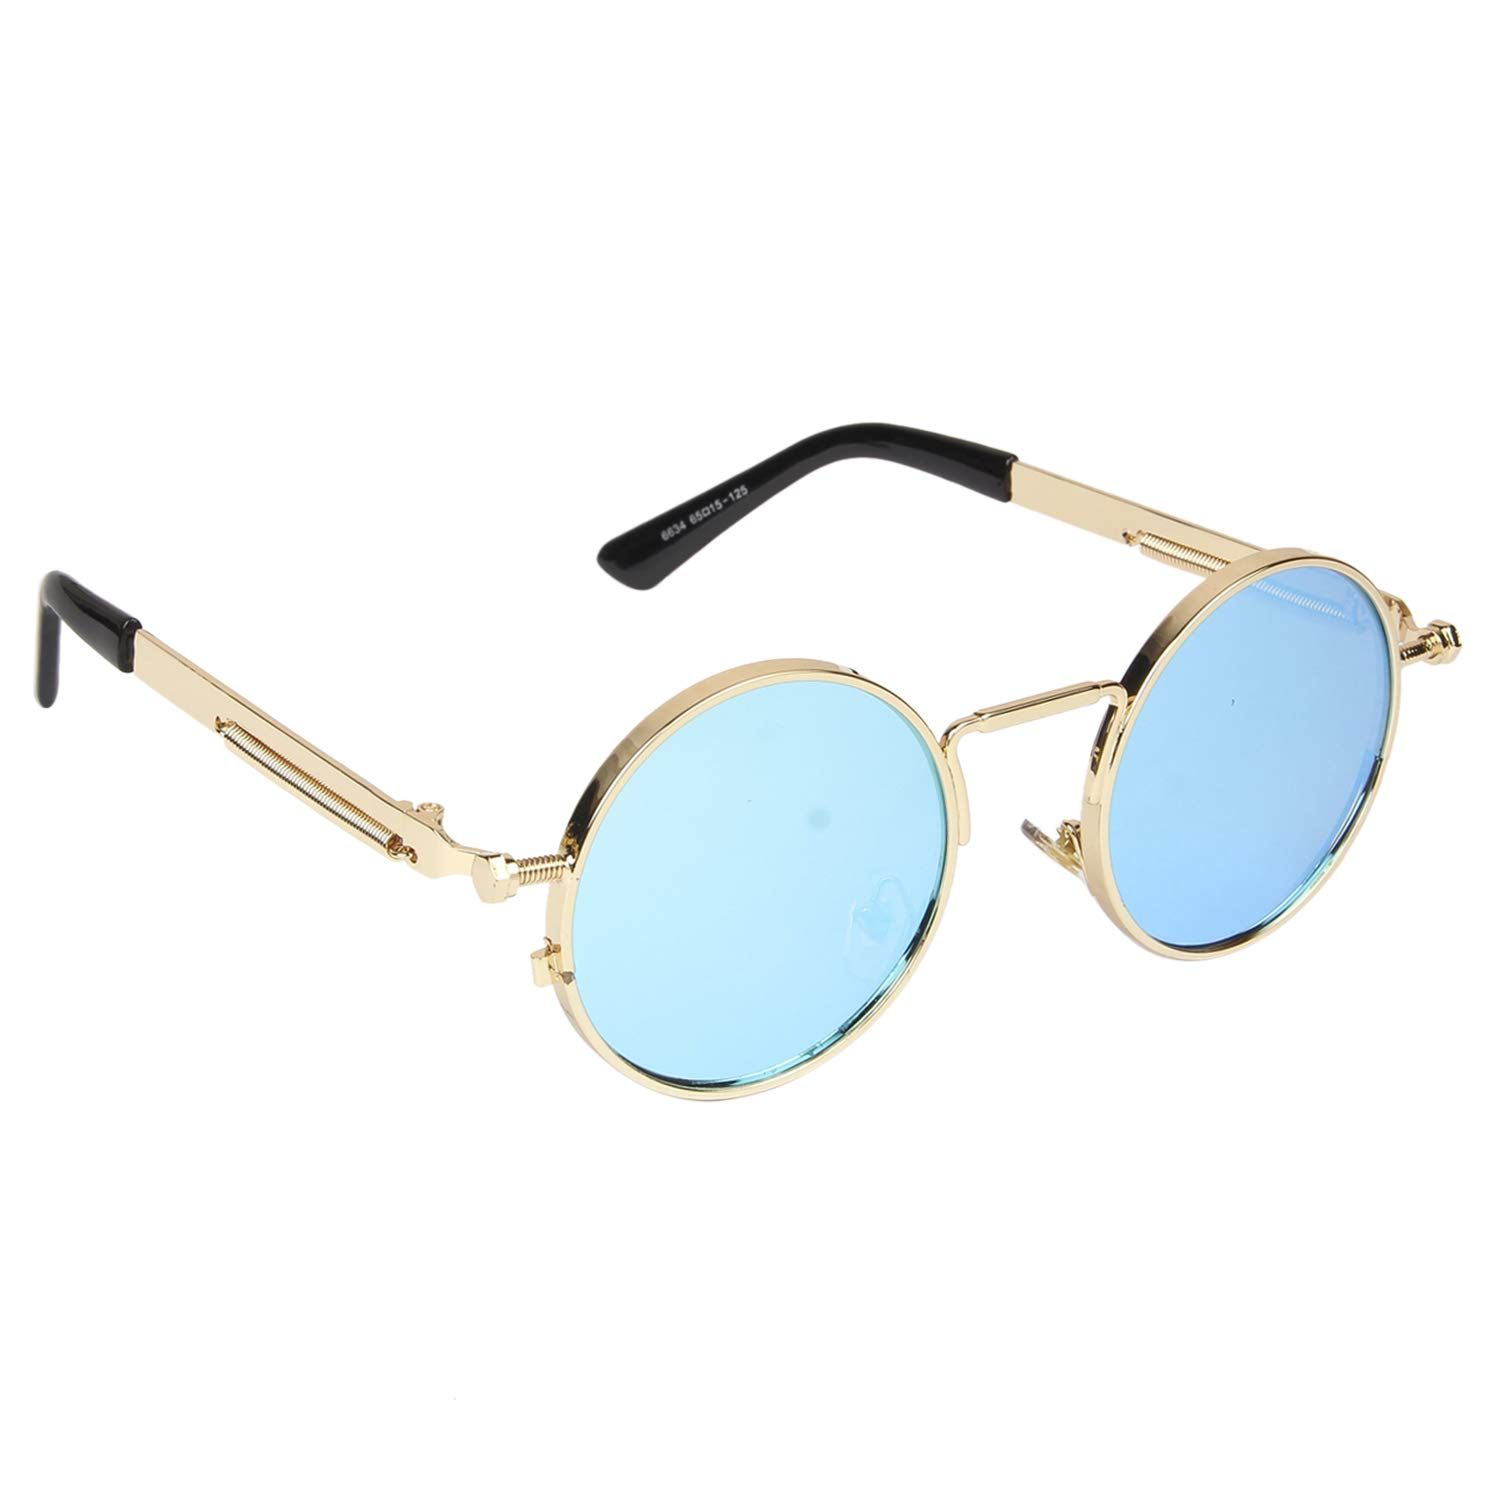 Arzonai Blue Steampunk Metal Sunglasses For Men And Women